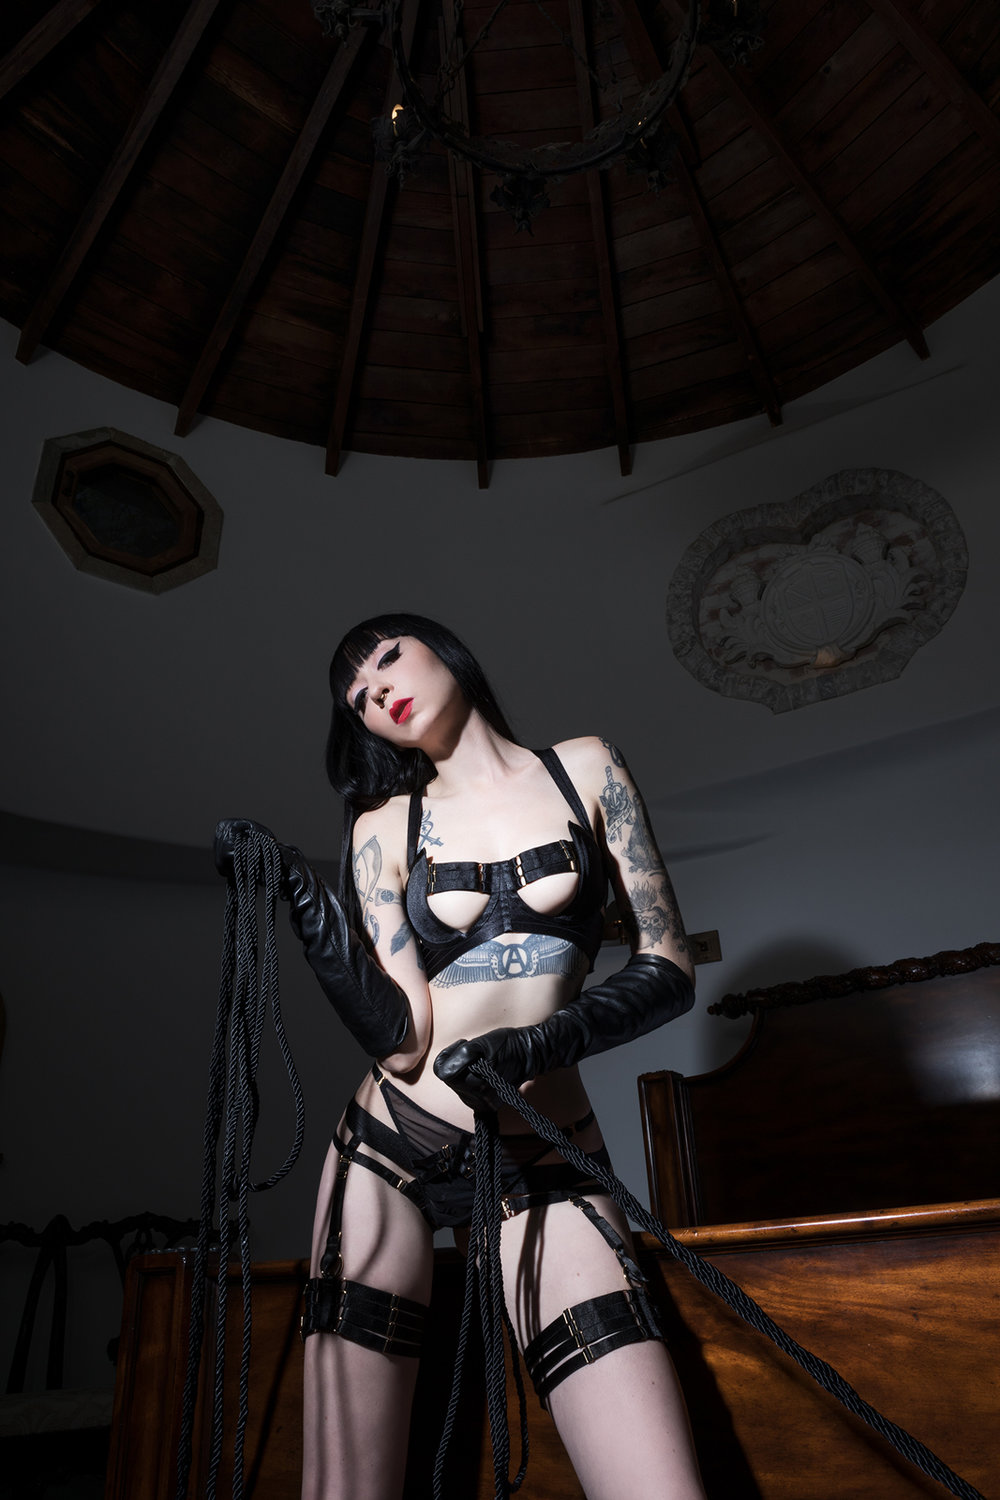 Mistress_Ramona_Ryder_SF_San_Francisco_Escort_Dominatrix_Domme_Rope_Master_Expert_Trample_Luxury.jpg